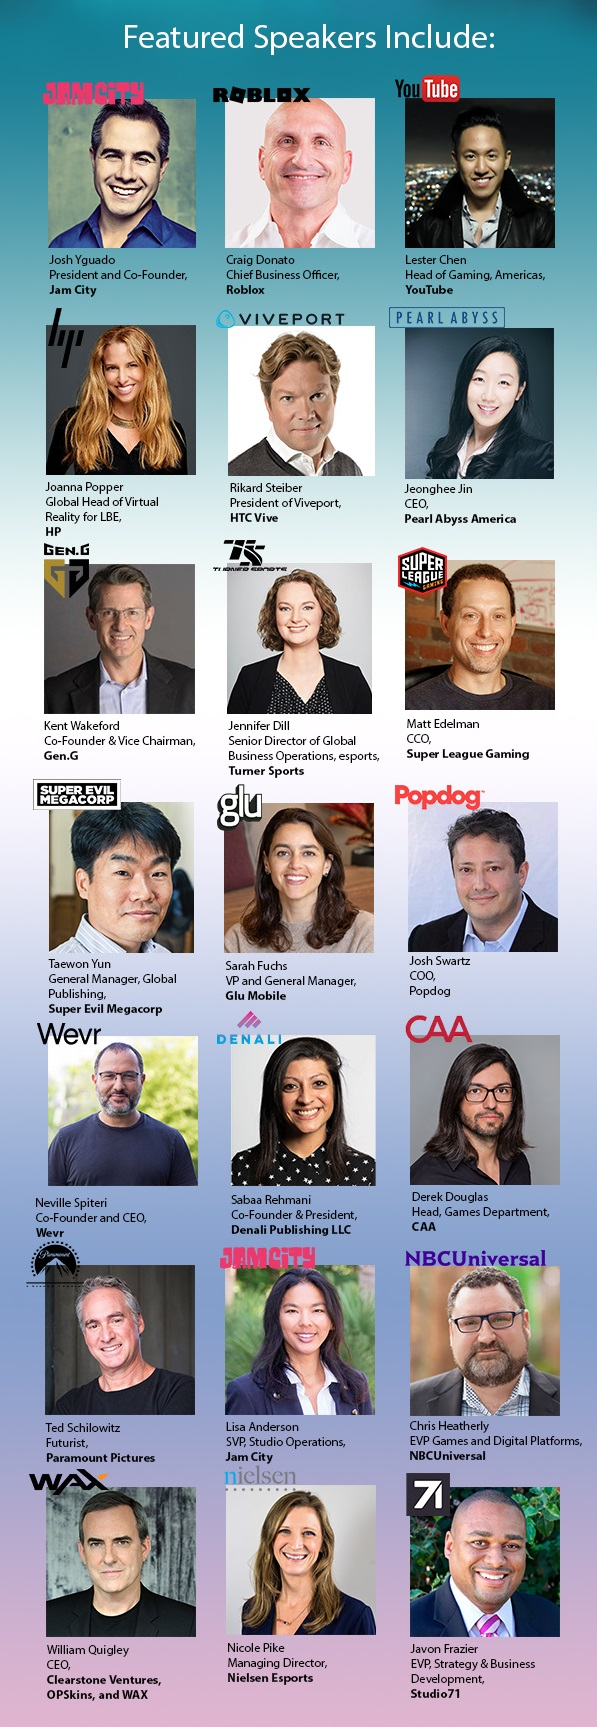 LAGC 2019 Featured Speakers